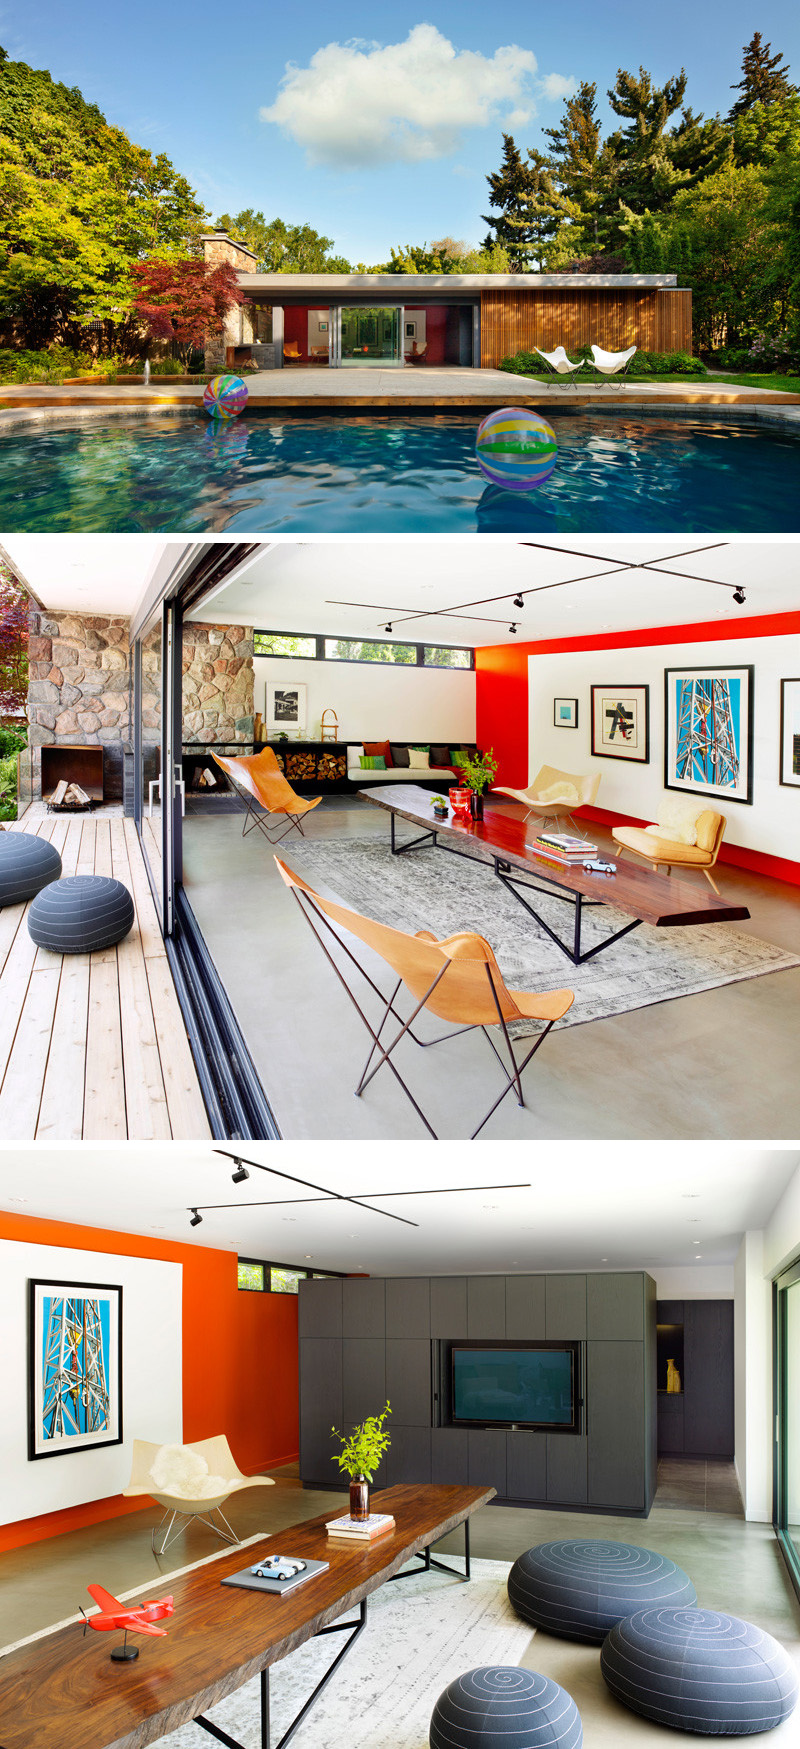 Mid-century inspired, this modern pool house has large glass sliding doors making it perfect to enjoy both indoor and outdoor space on a hot sunny day.